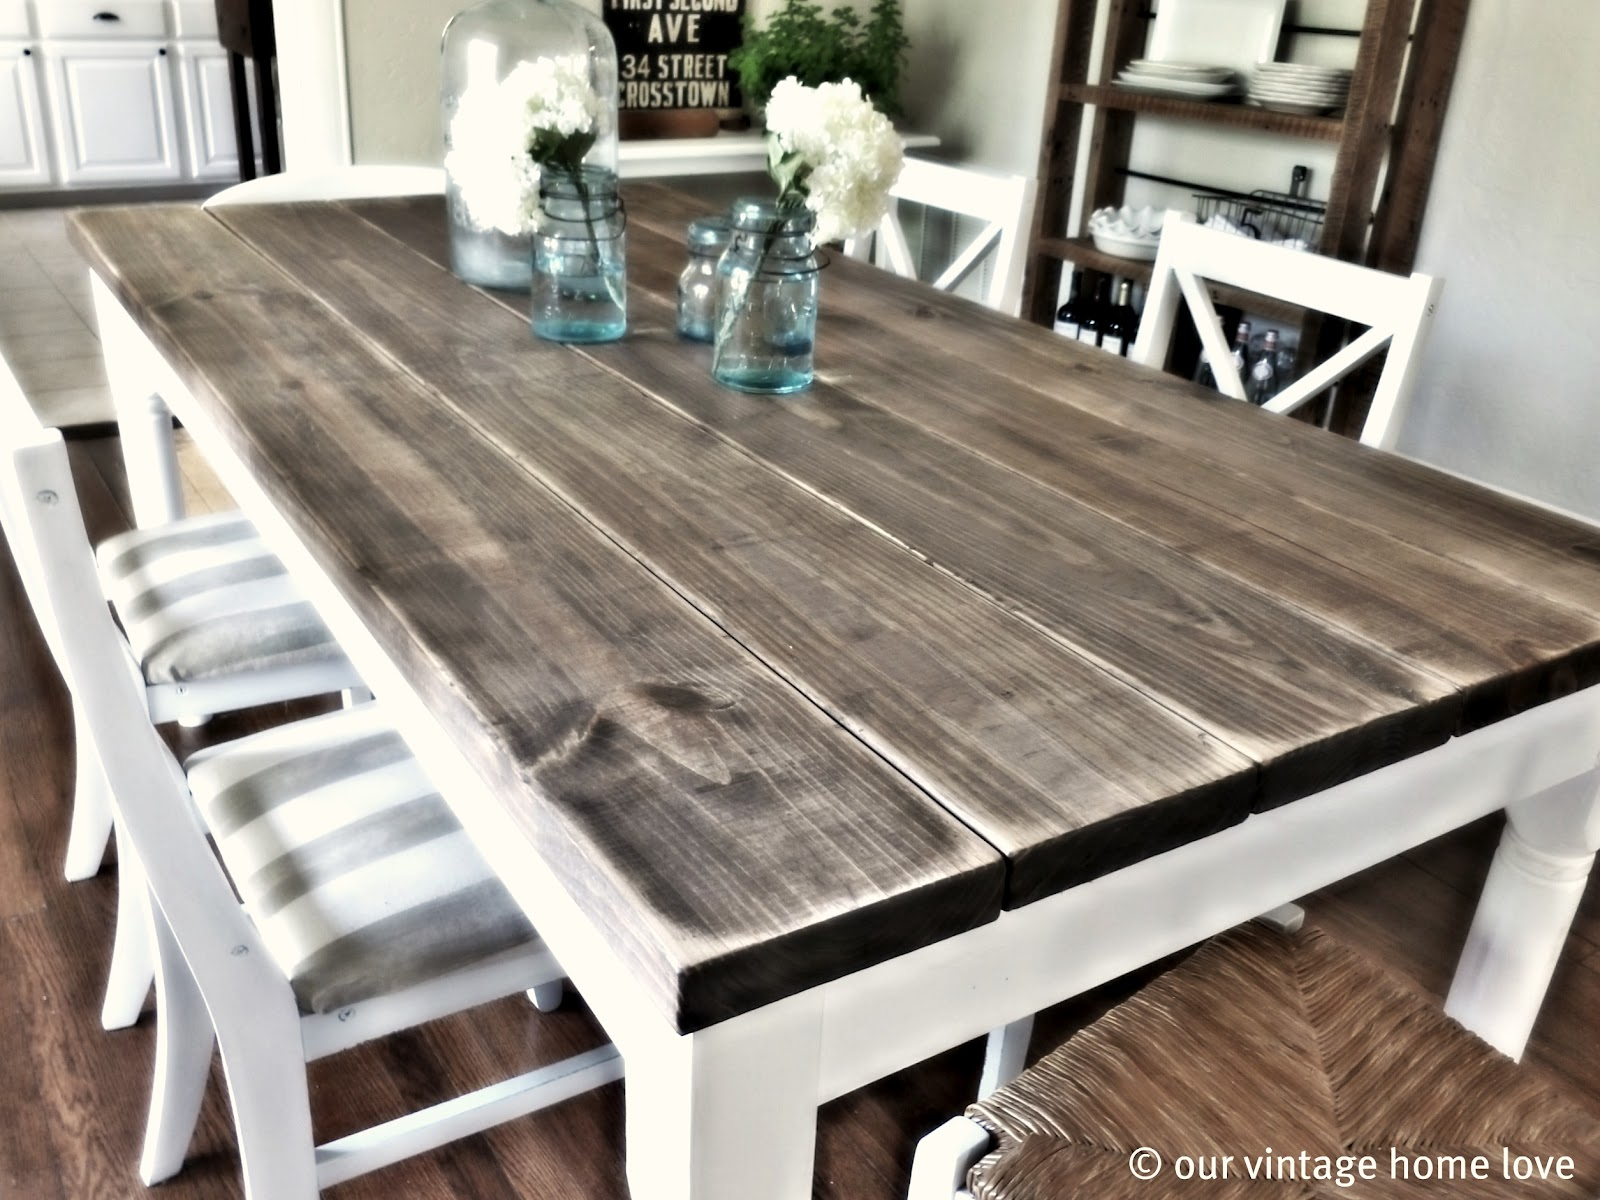 Farmhouse Style Dining Room Sets Homemade Dining Room Table Is Also A Kind Of How To Build A Dinner